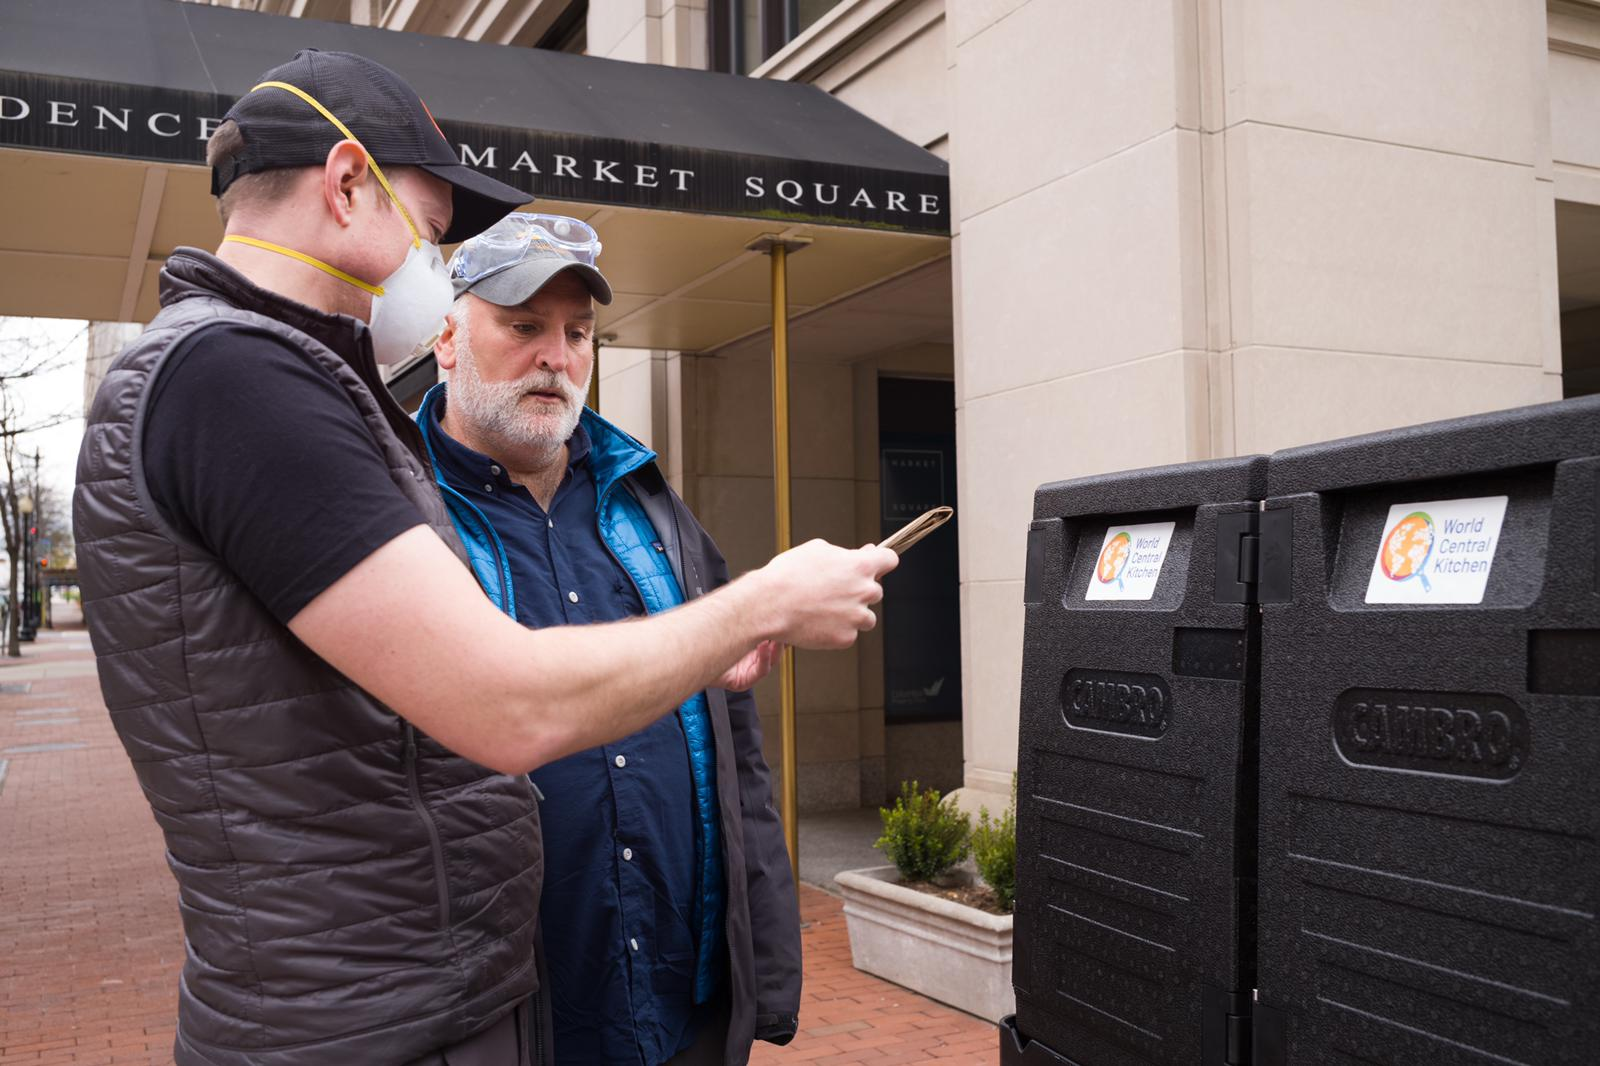 Two men looking at an ipad on the street, one wearing a face mask